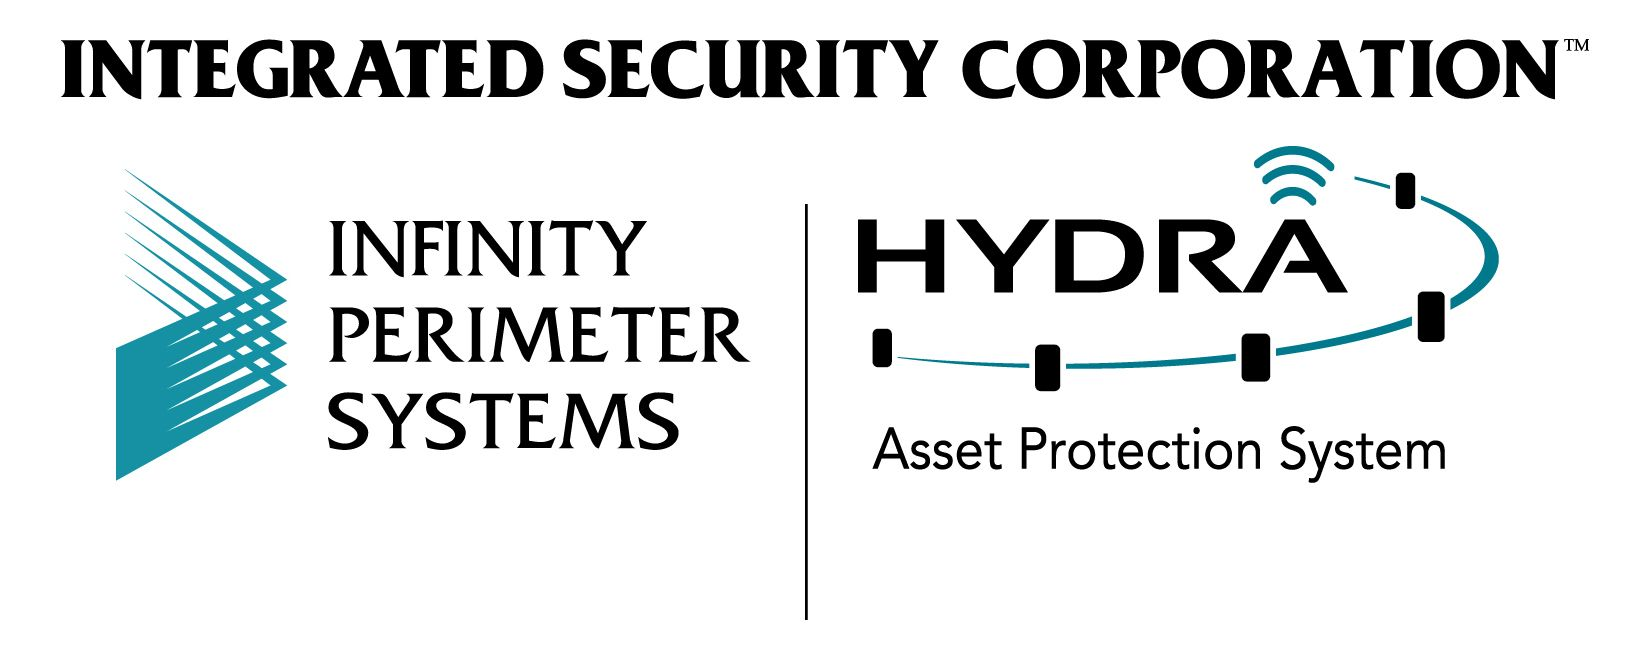 Integrated Security Corporation